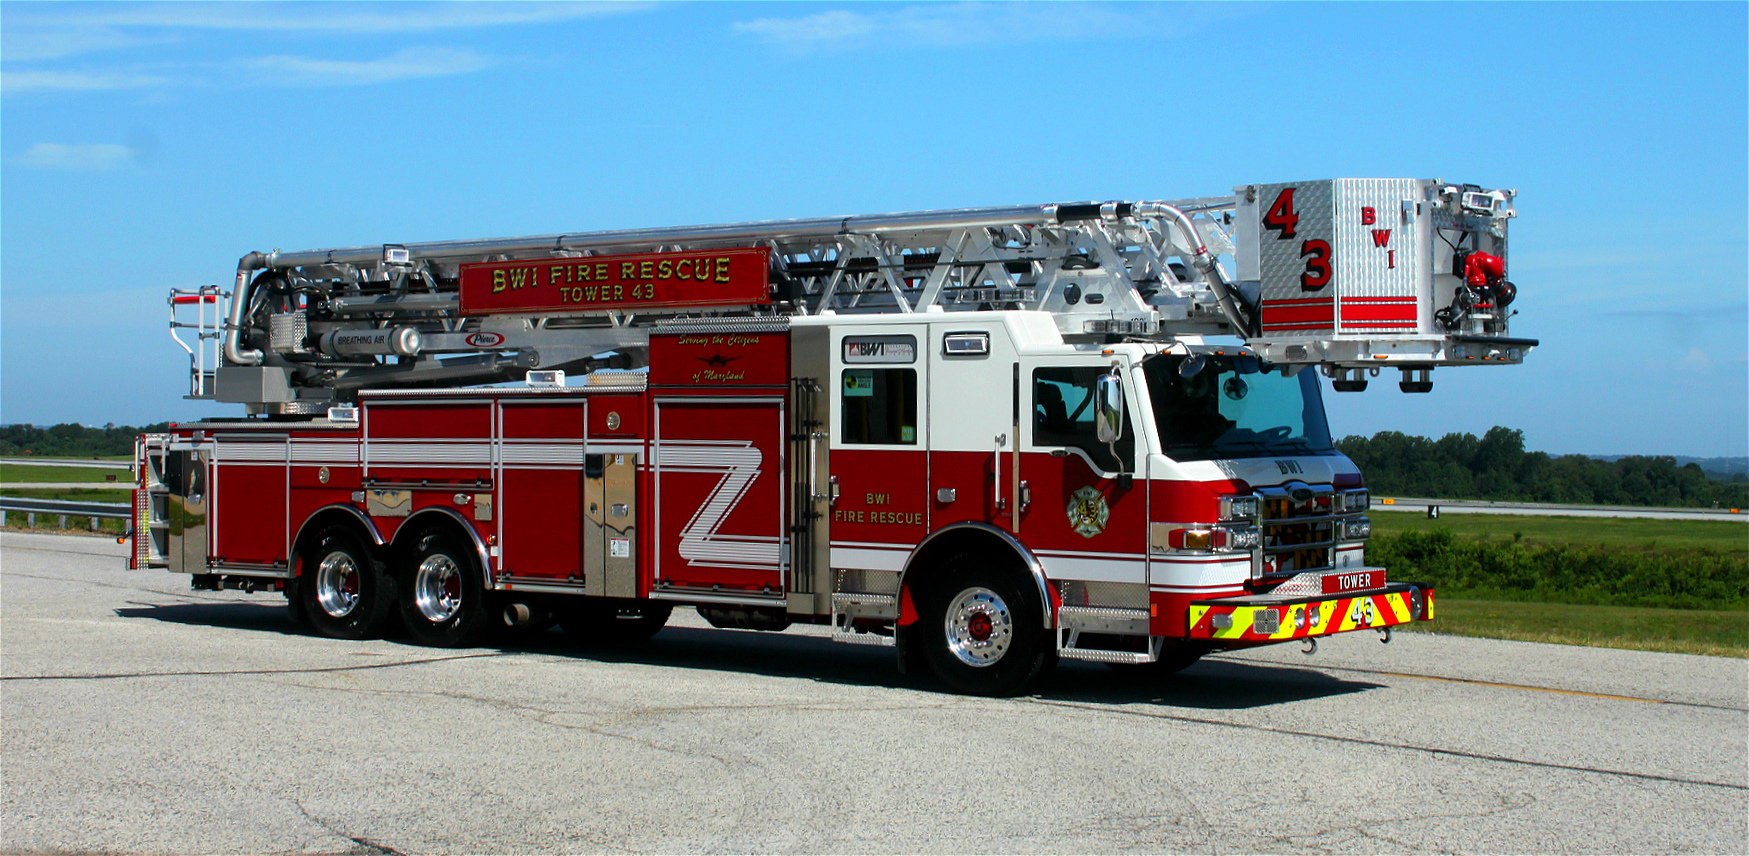 Md Bwi Fire Rescue Engine Ladder